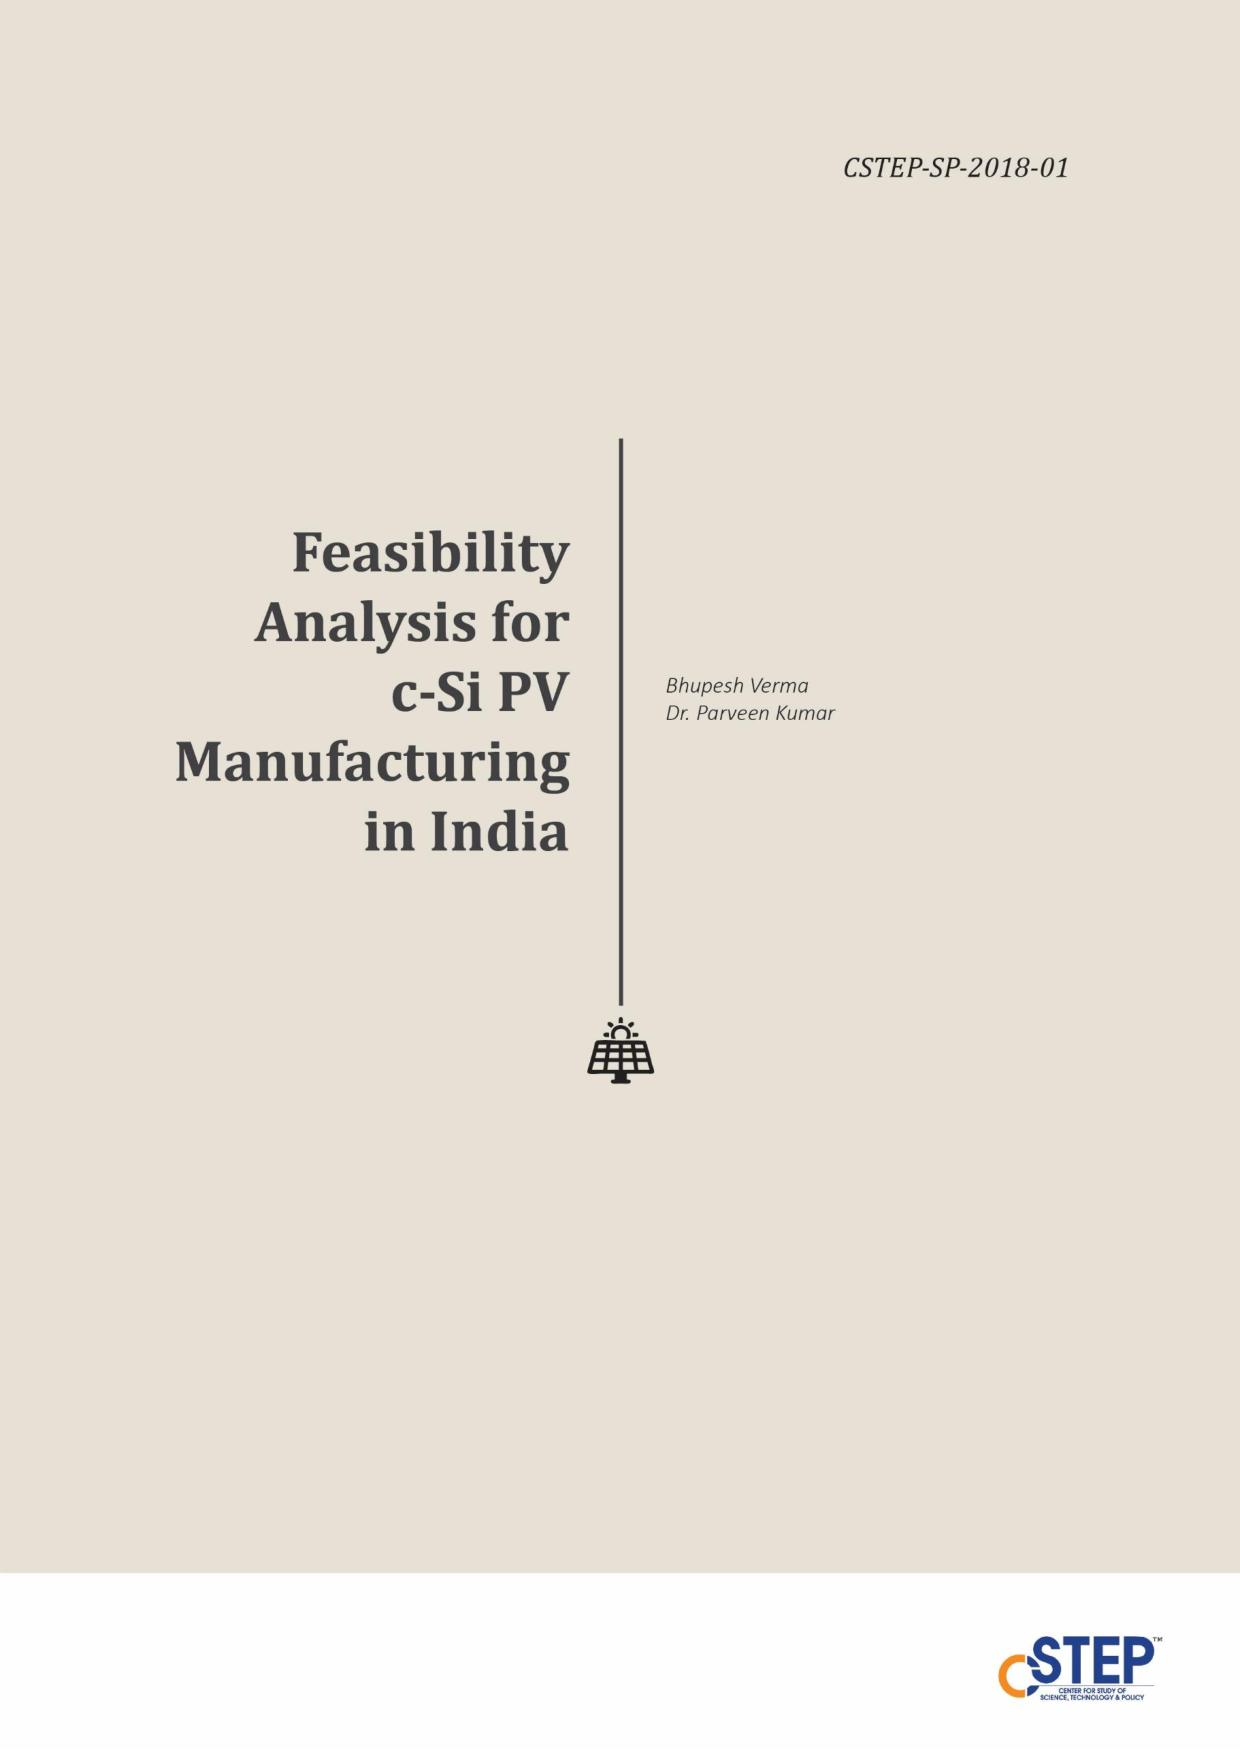 Feasibility Analysis for c-Si PV Manufacturing in India